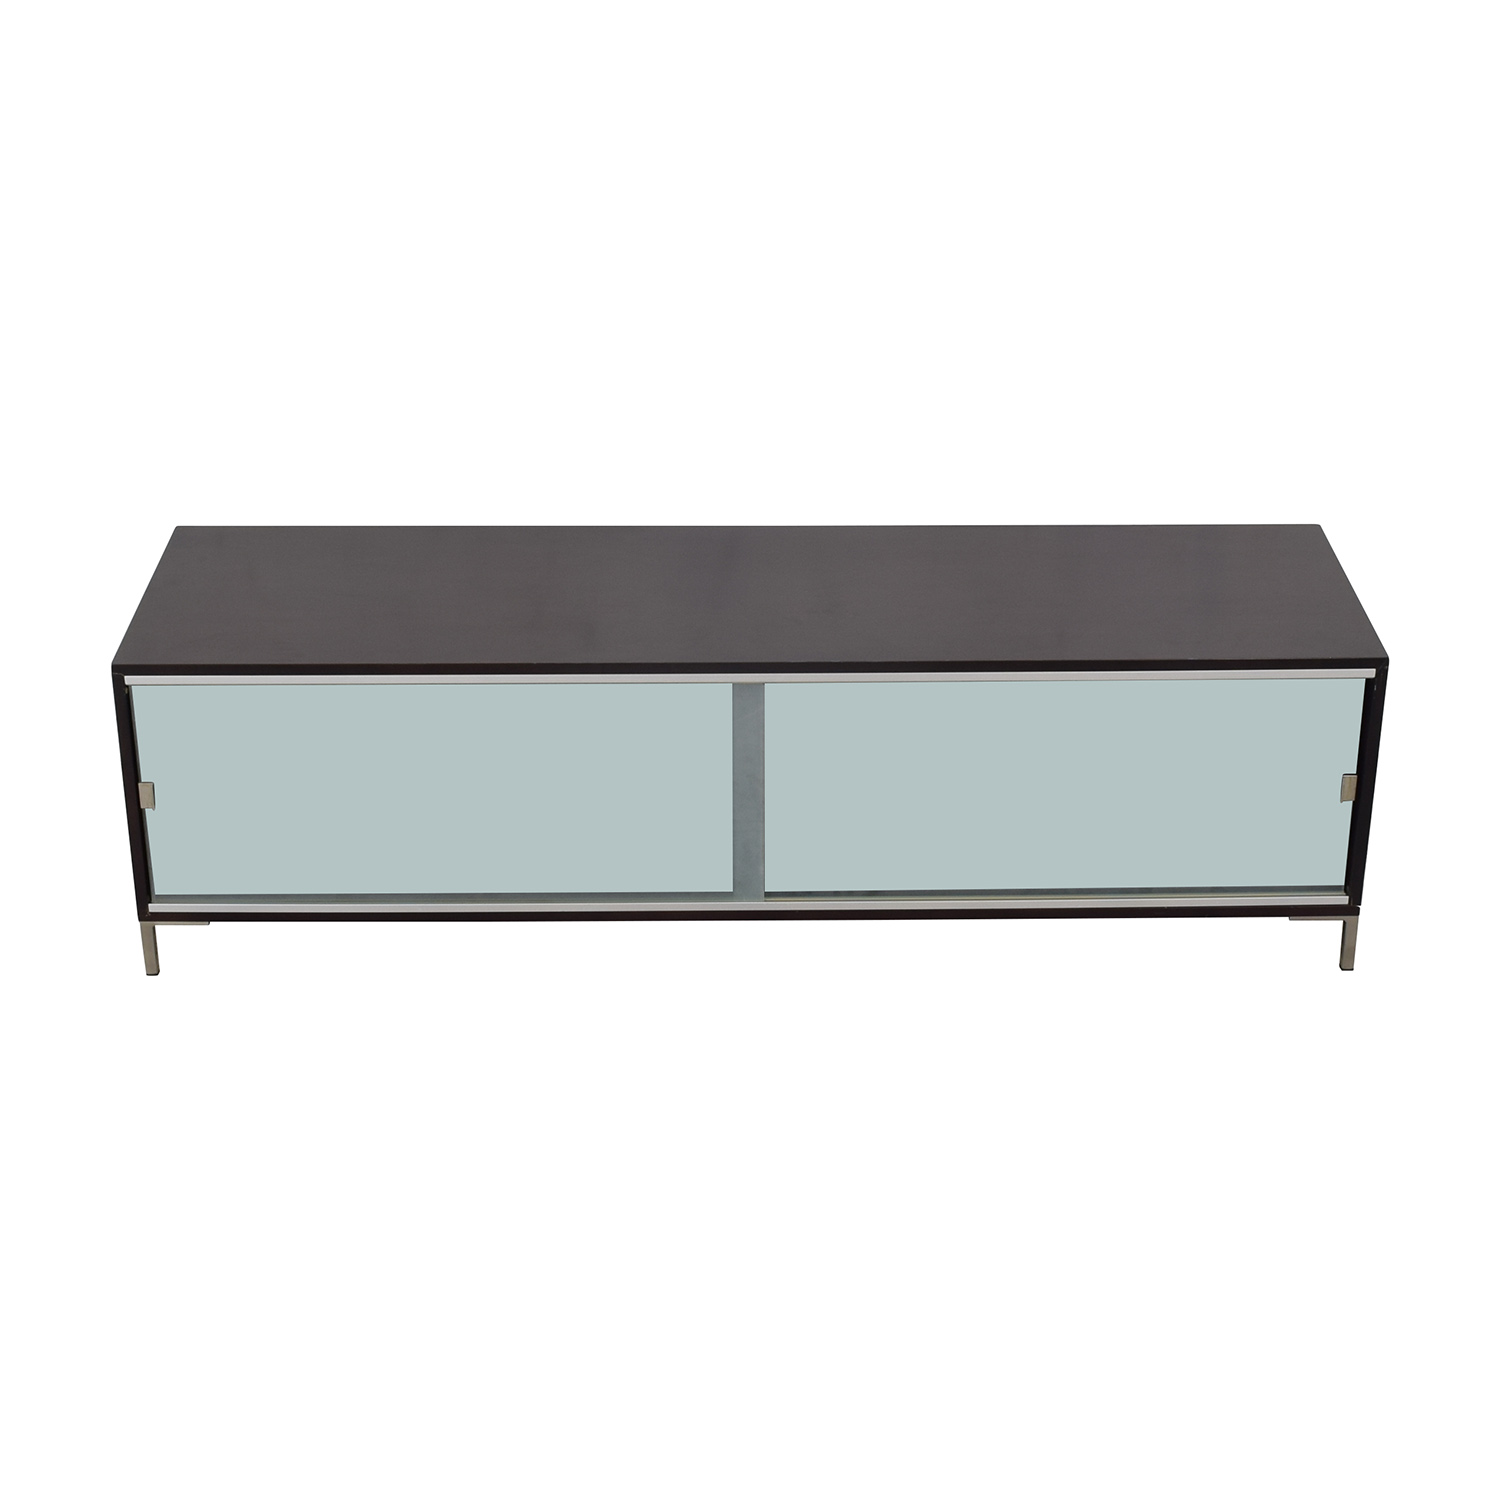 Canadian Custom Credenza Sideboard / Media Units